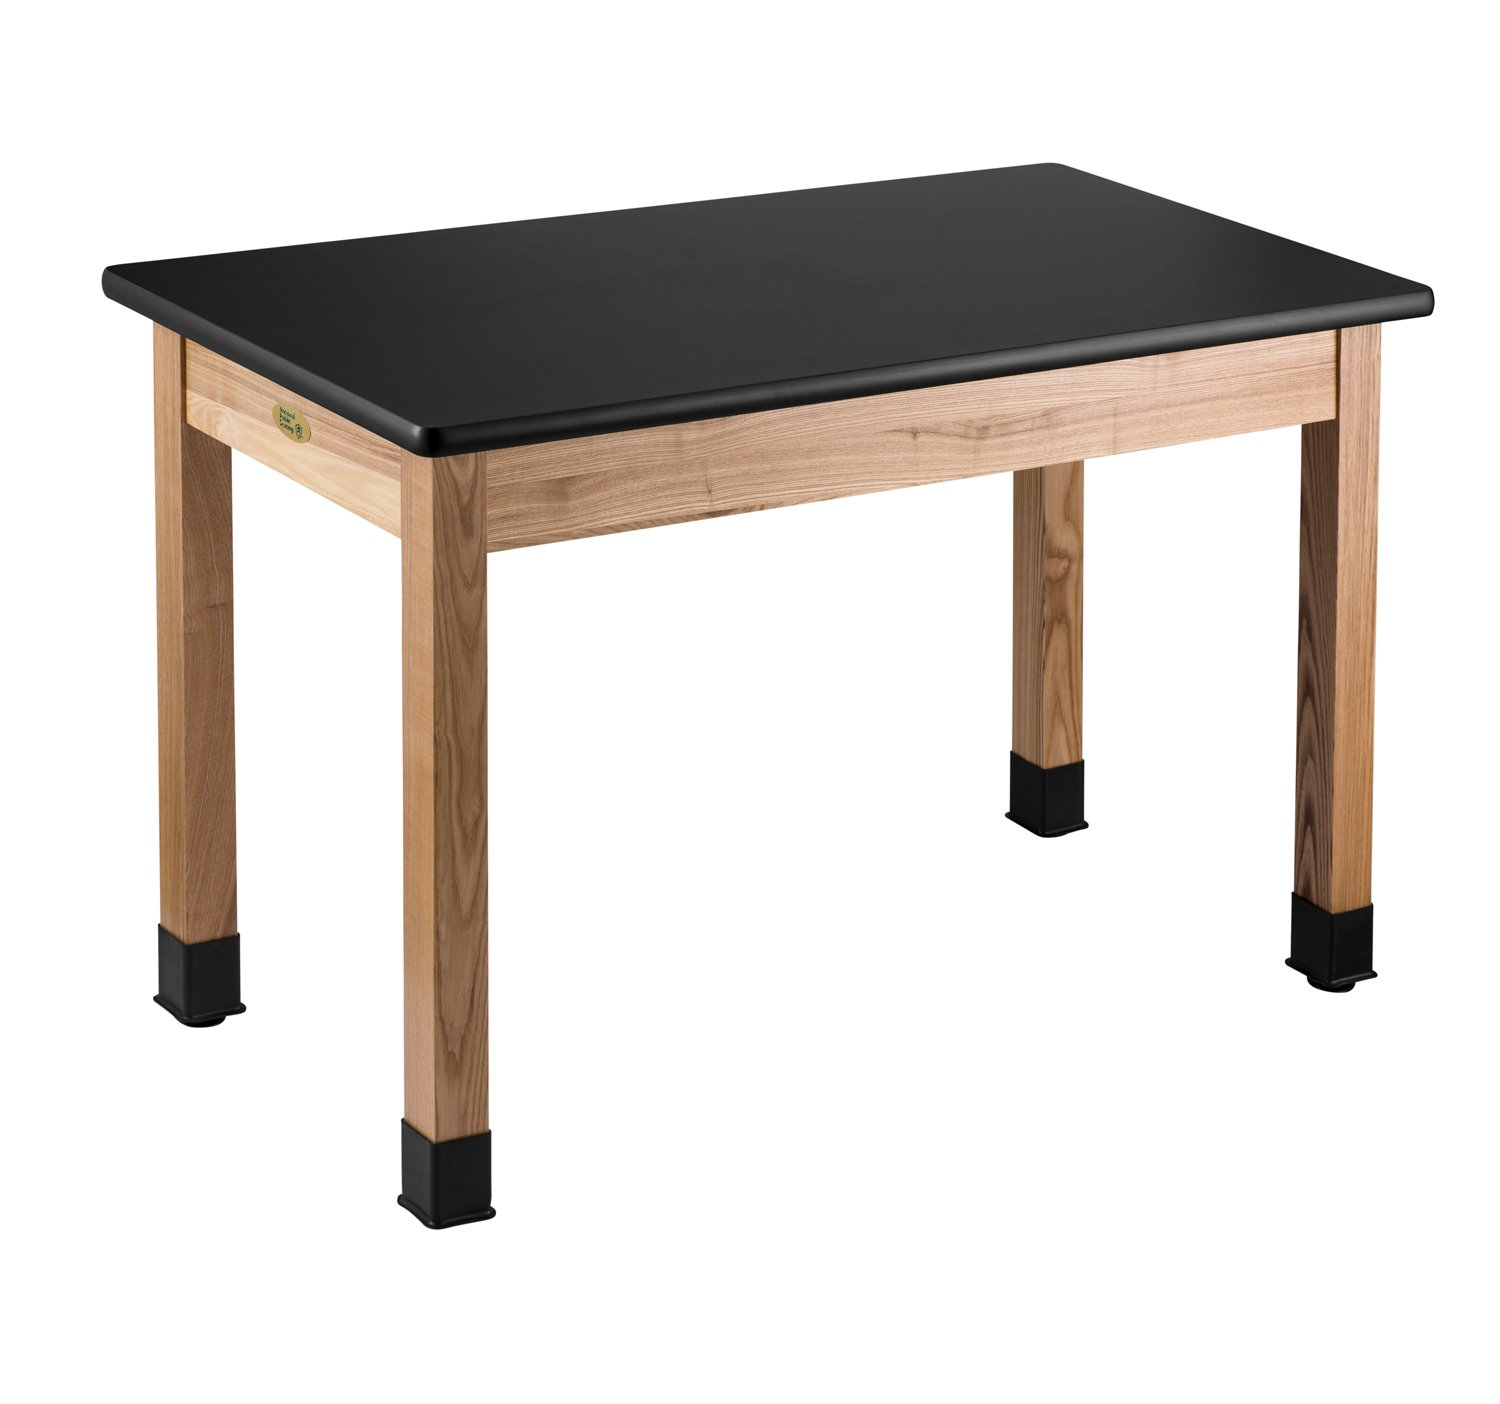 National Public Seating High Pressure Laminate Top Science Lab Table, 72''L X 30''H, Black Top and Ashwood Legs